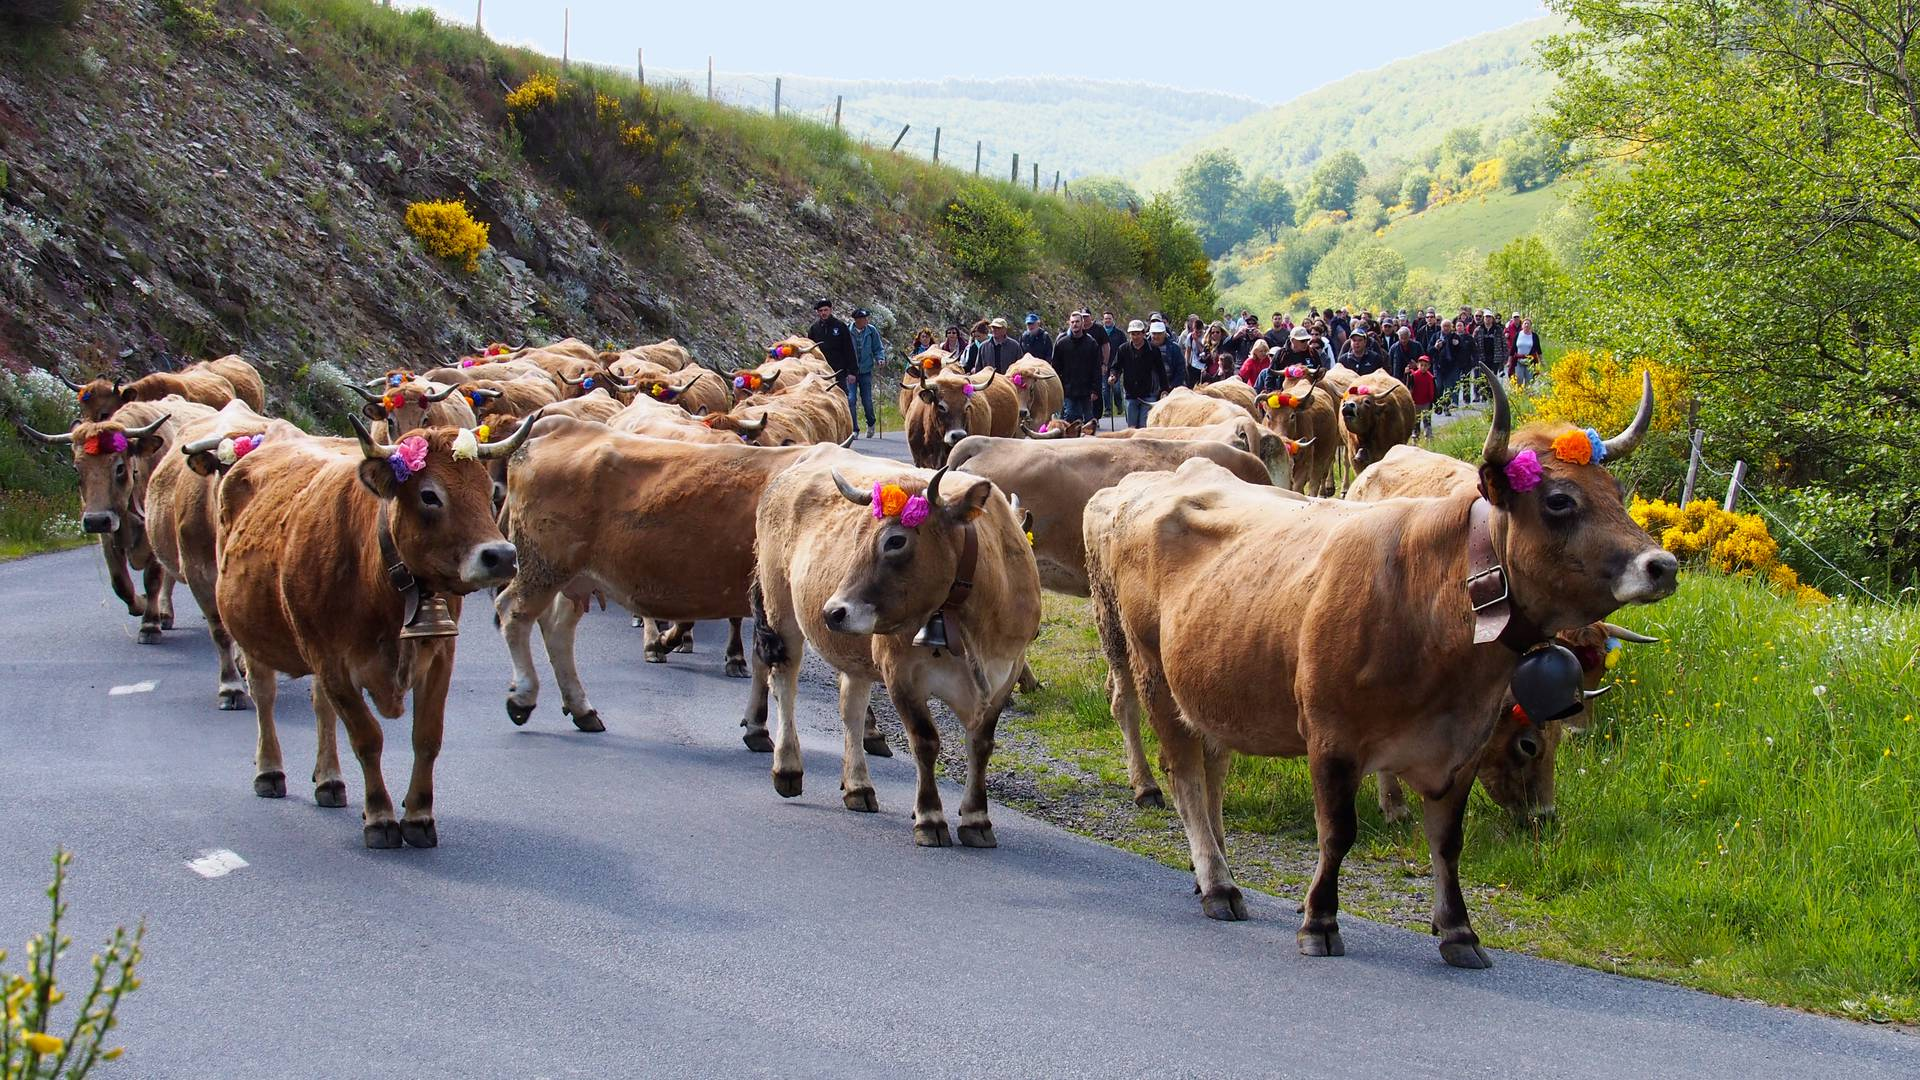 Aubrac cows arrival at Bonnecombe pass in the Aubrac mountains